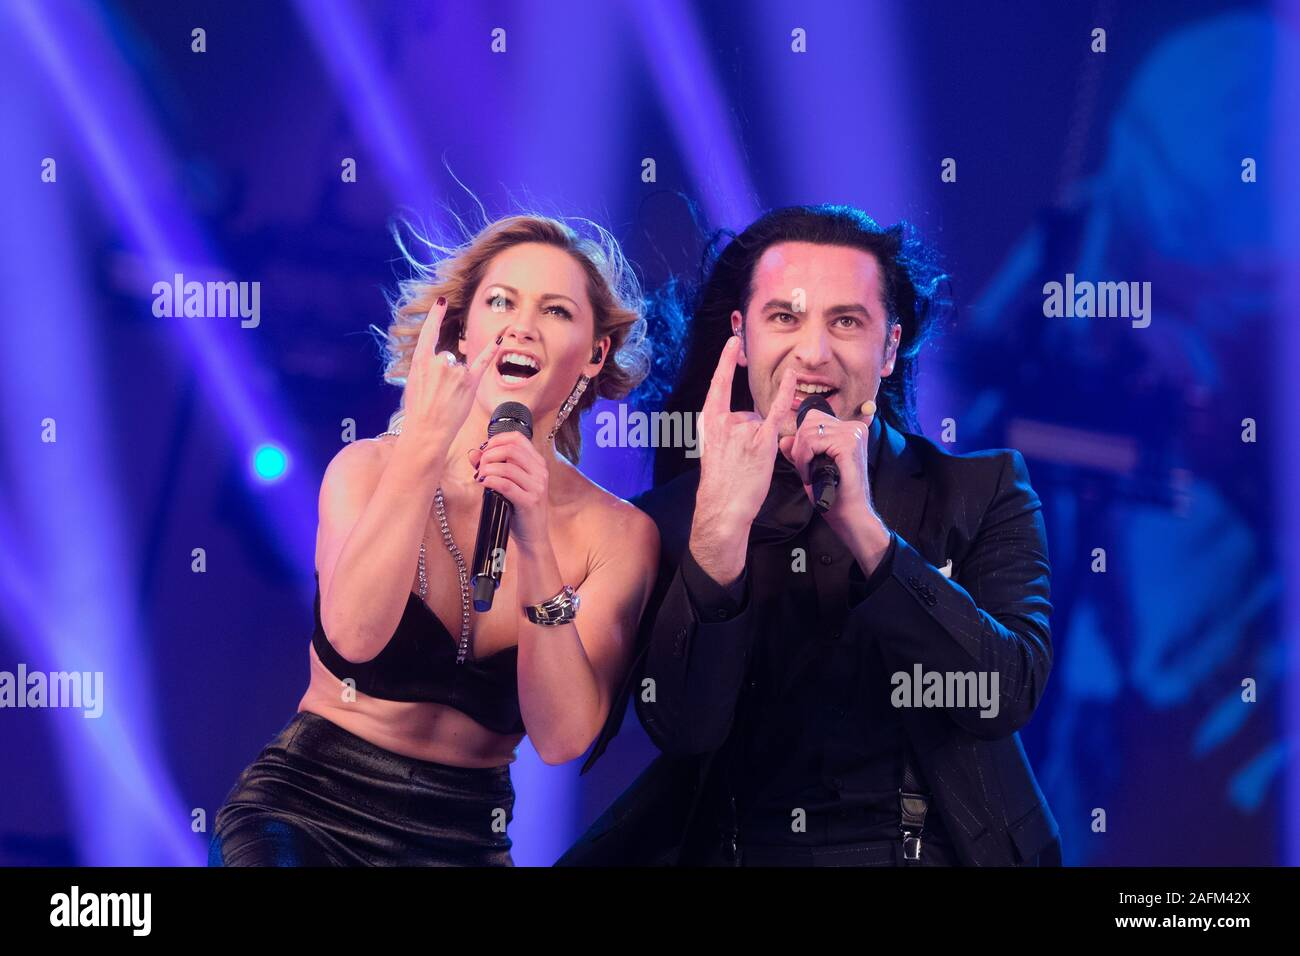 Duesseldorf Germany 15th Dec 2019 Helene Fischer And Bulent Ceylan Perform During The Recording Of The Helene Fischer Show In Hall 6 On 25 12 2019 At 20 15 The Helene Fischer Show Will Be